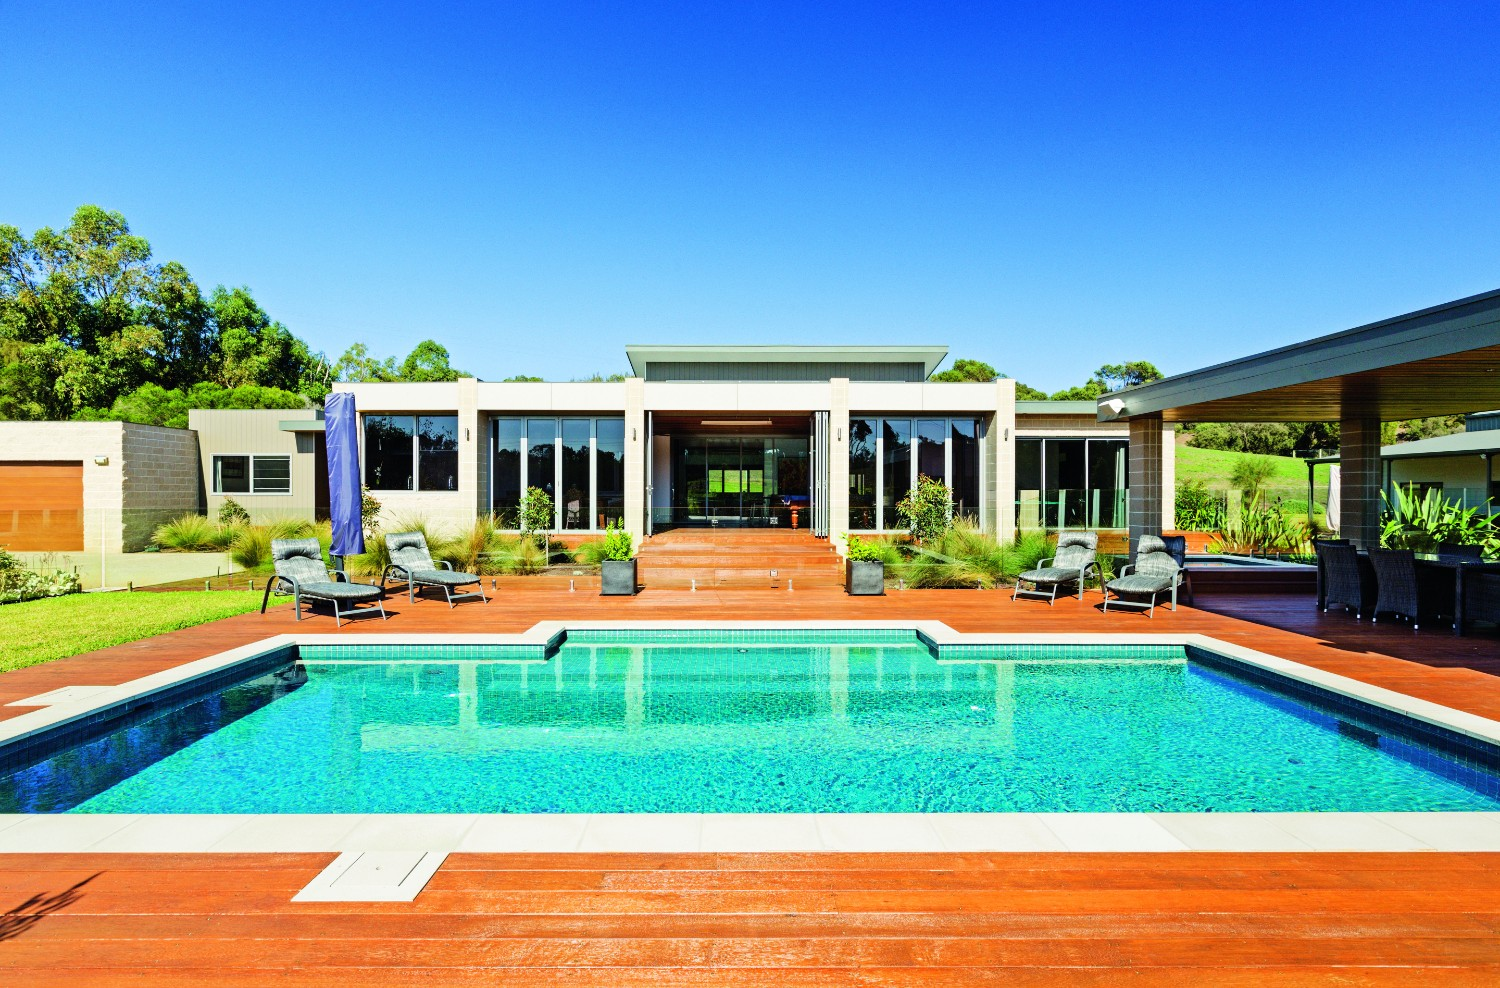 Country pool escape: rural tranquility - view of pool and home